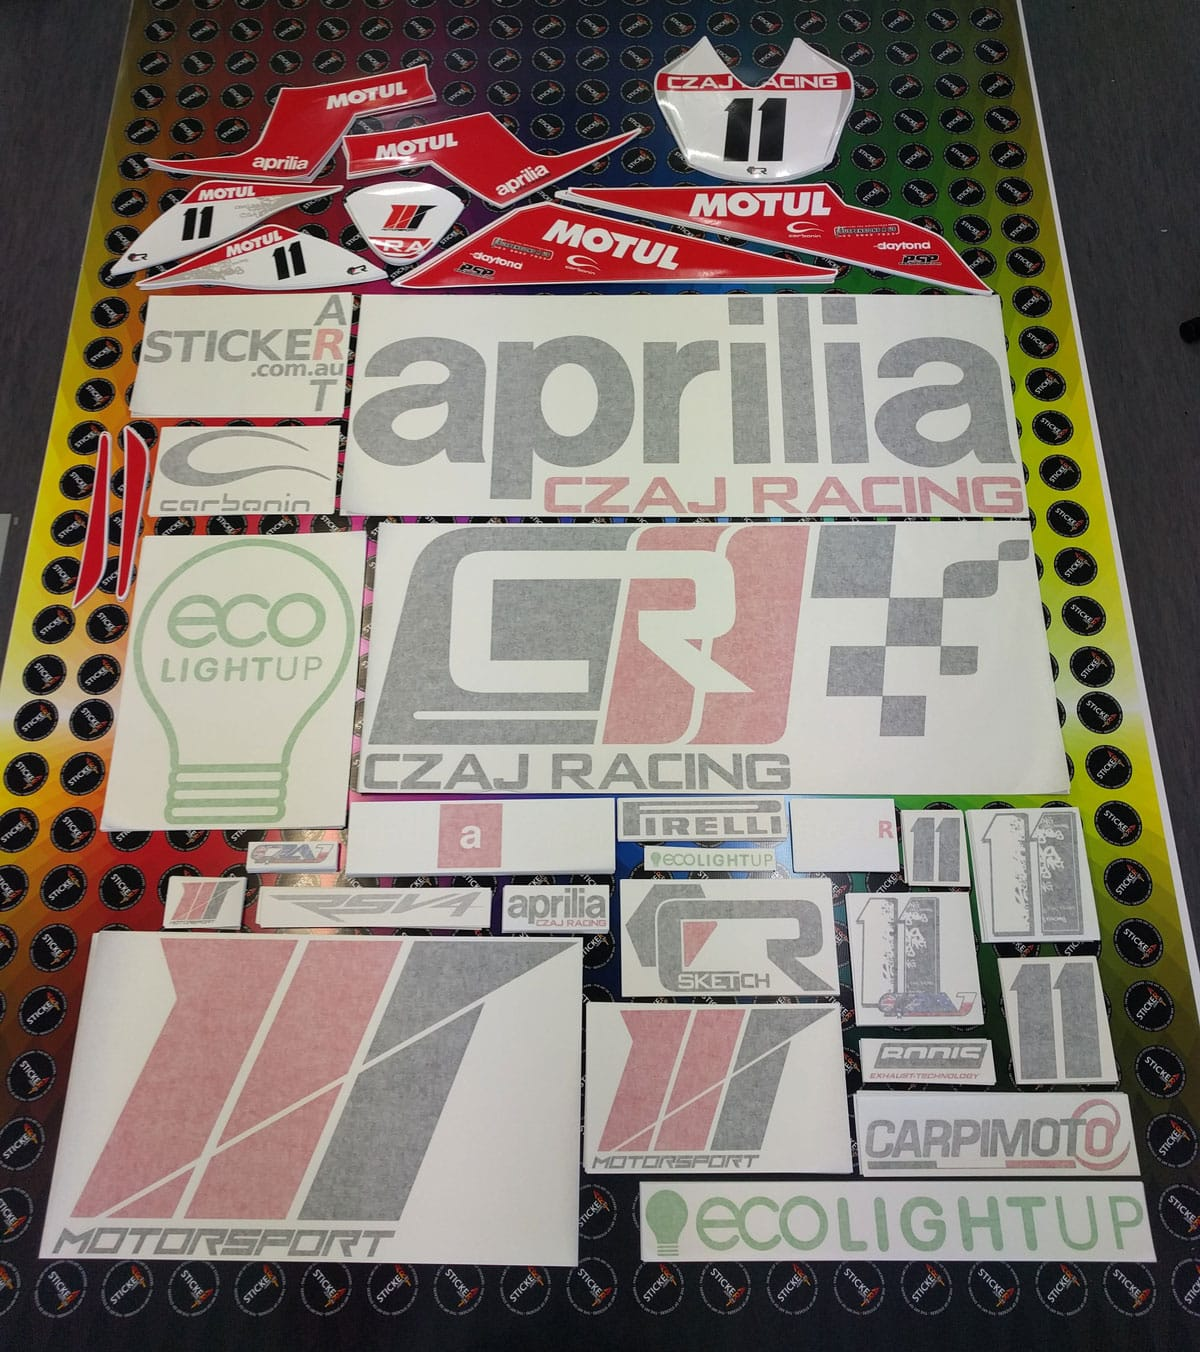 Stickers and Decals for CZAJ Racing